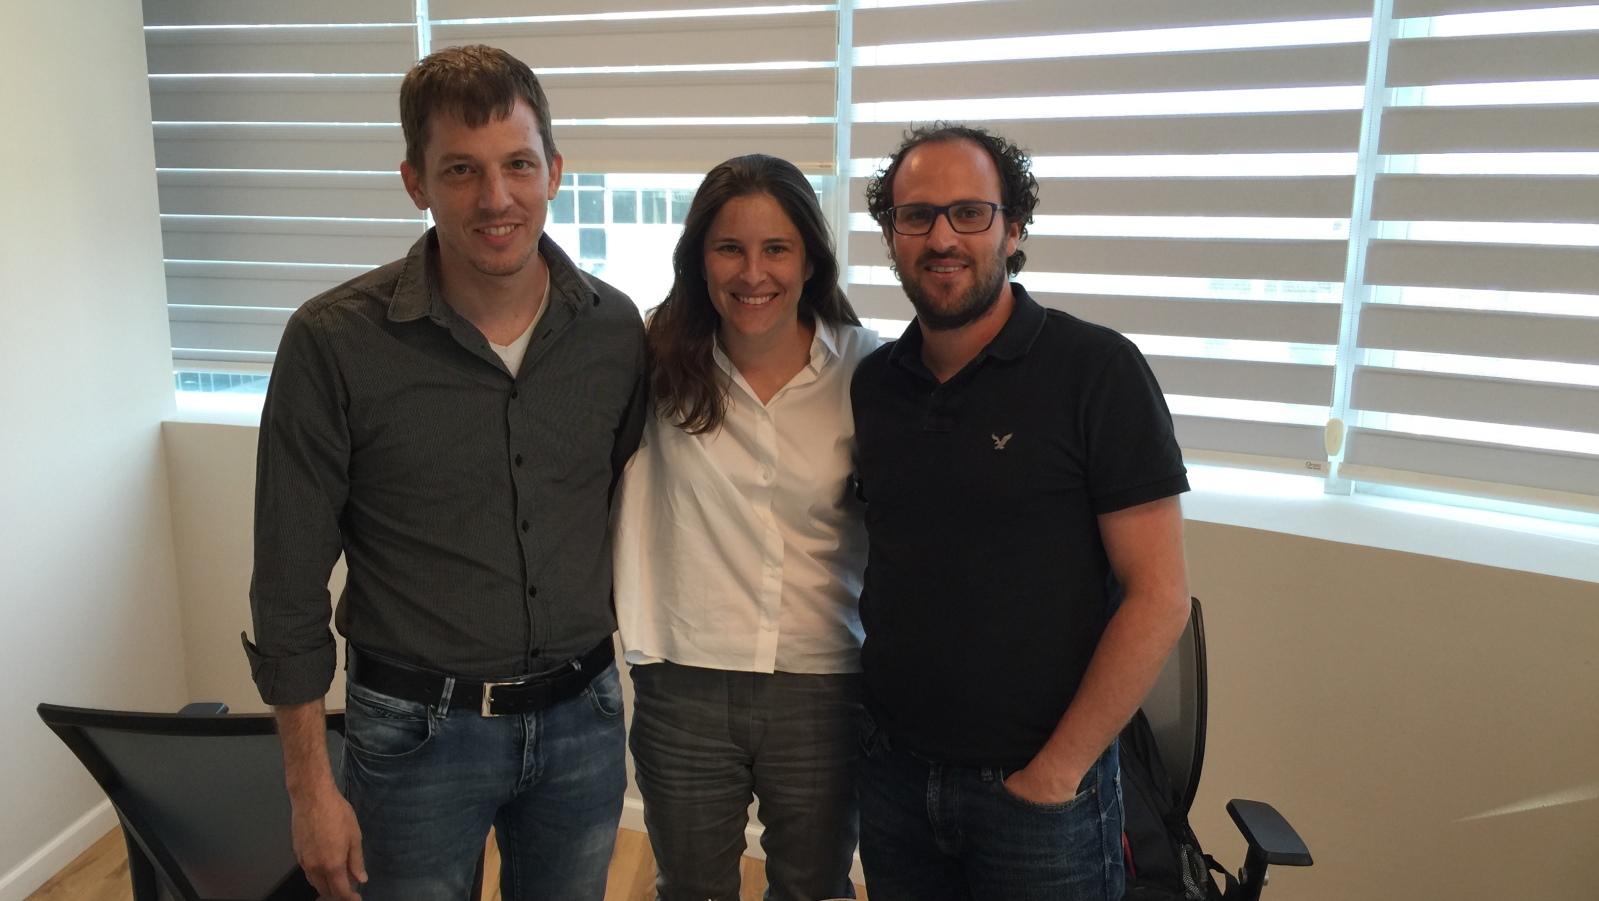 From left, MyndYou cofounders Itay Baruchi, Ruth Poliakine Baruchi and Dan Sztybel. Photo: courtesy